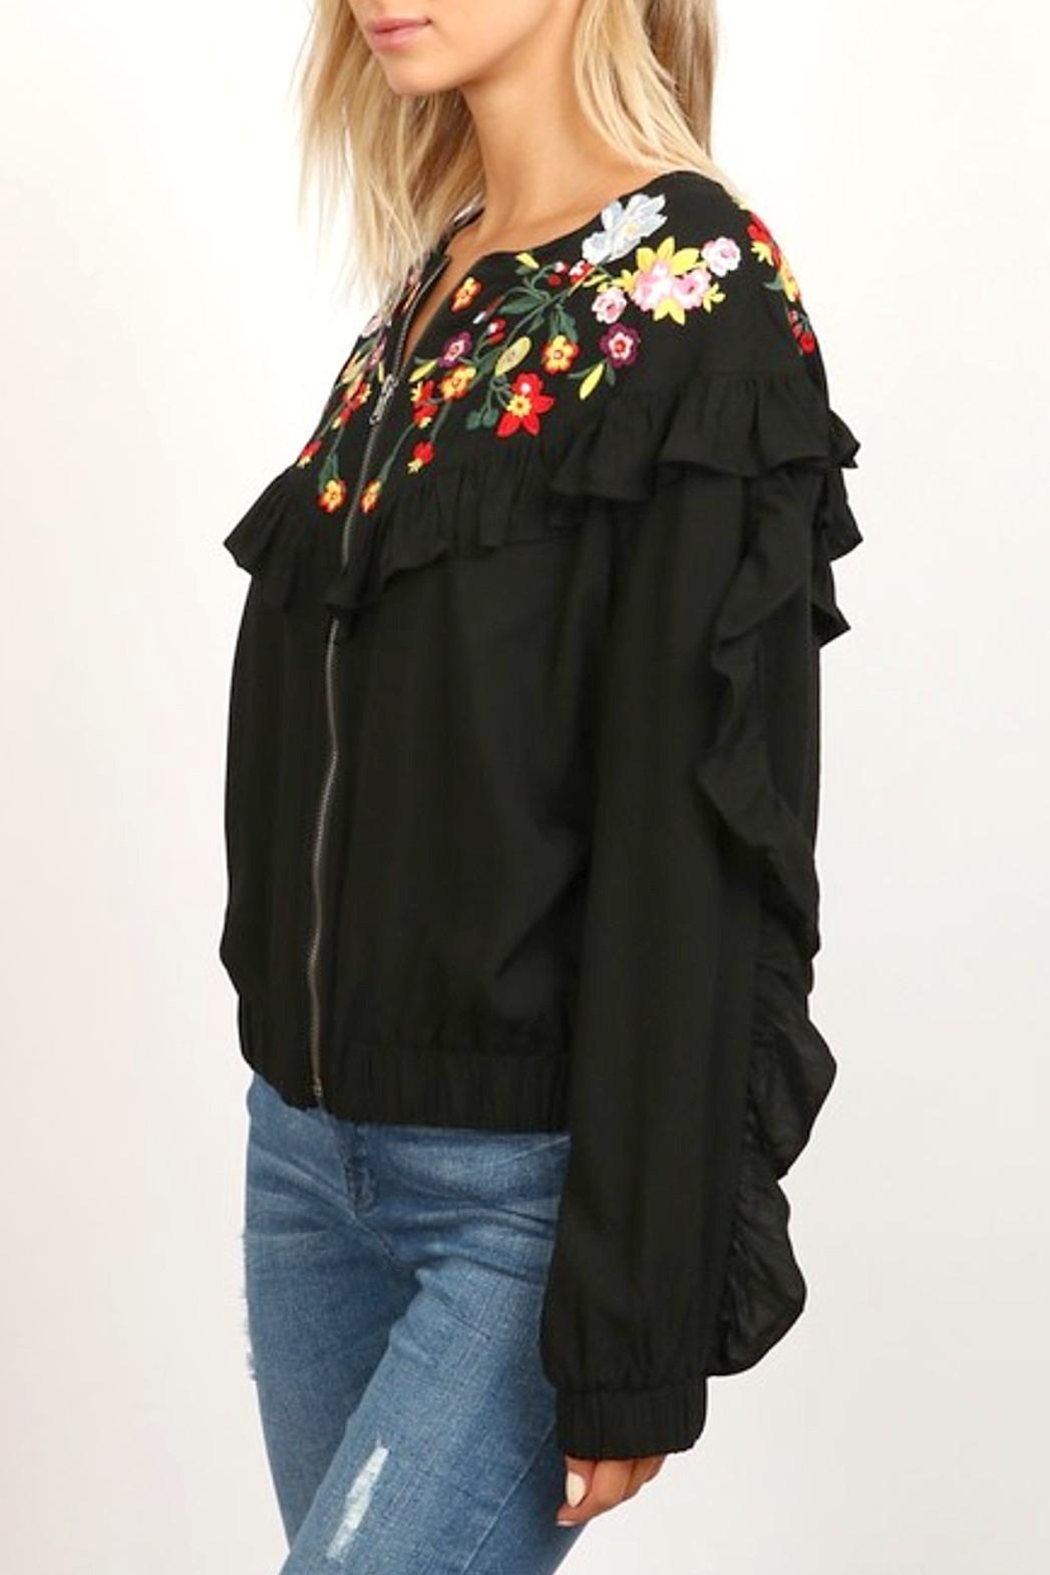 hummingbird Zip Ruffle Jacket - Main Image